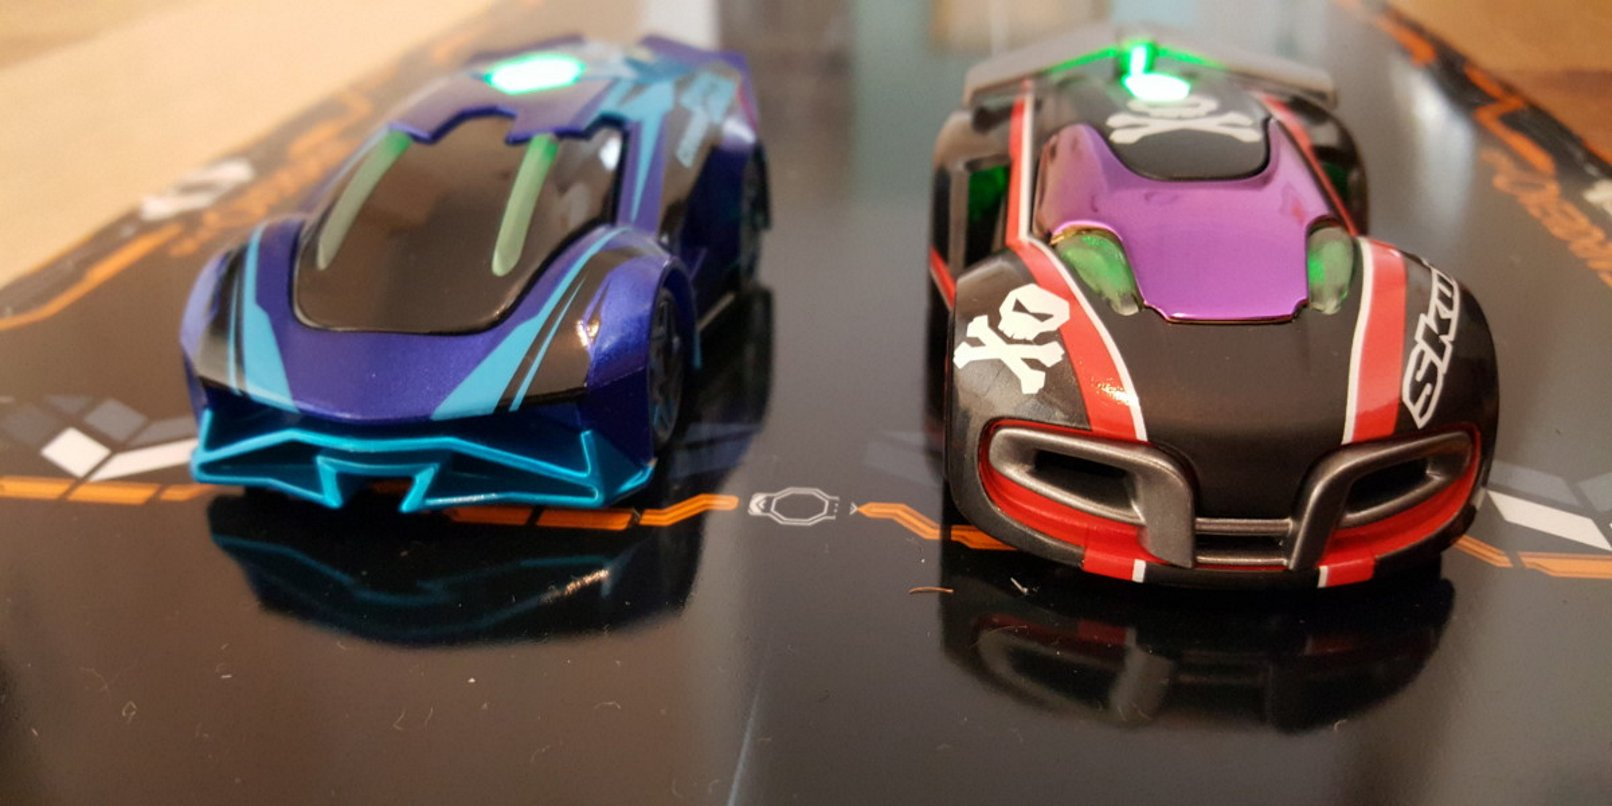 RT @TheNextWeb: Ideal Gifts: Anki's robot cars bring all the fun of slot racing and Mario Kart combined https://t.co/agB08IaEgh https://t.c…